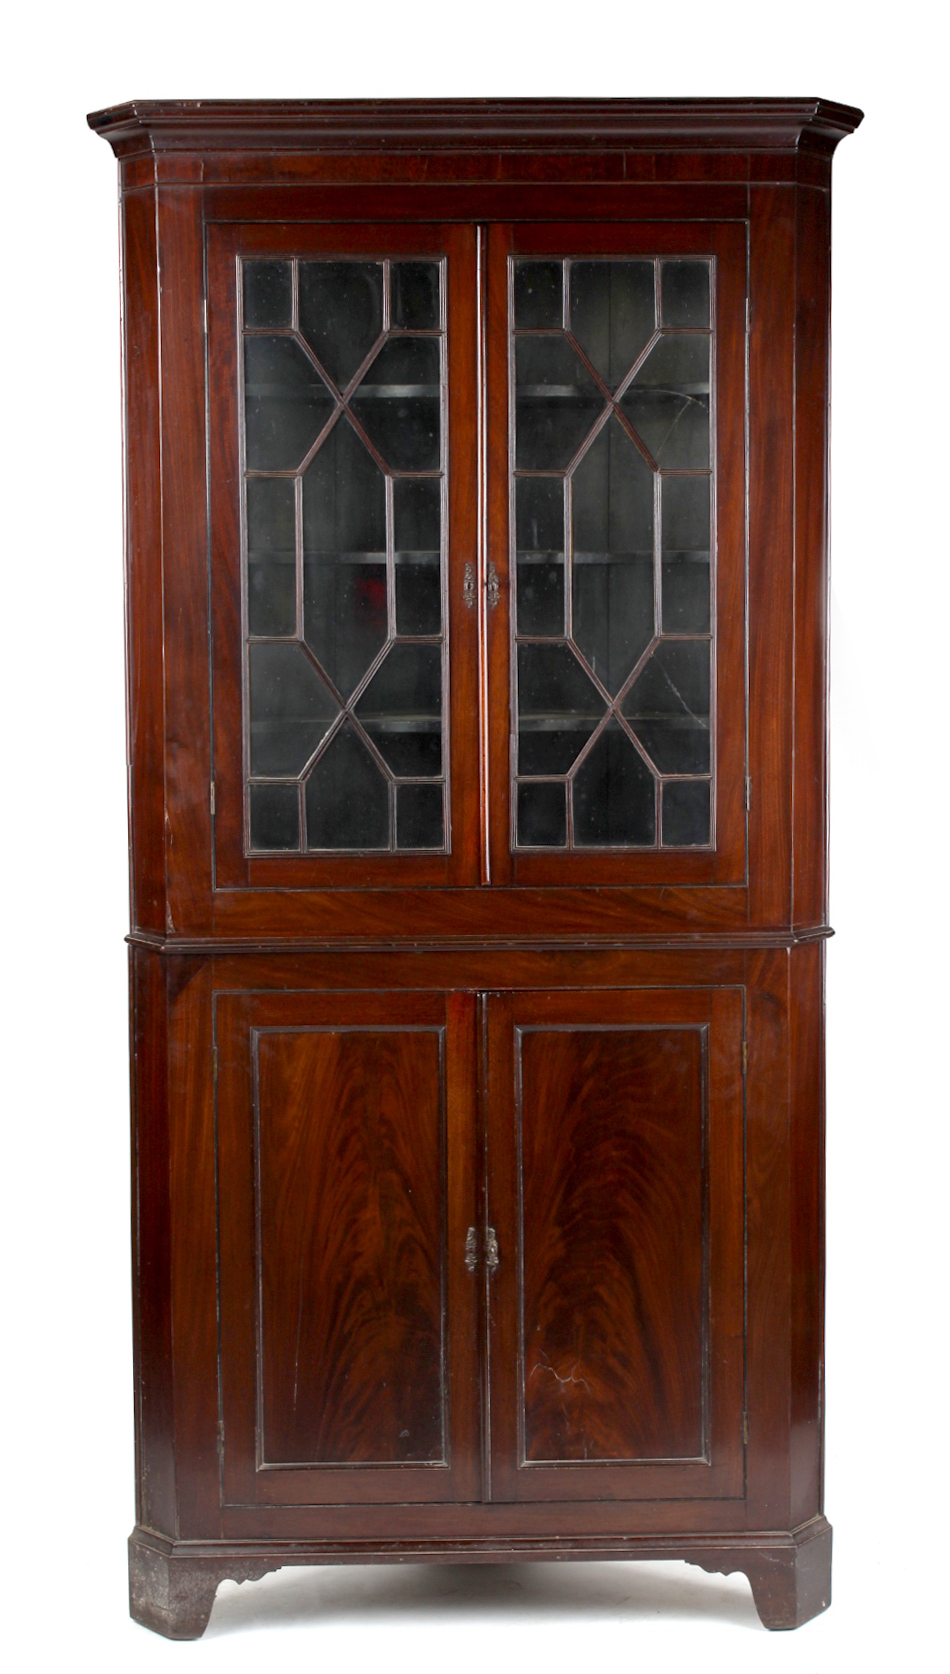 Property of a deceased estate - an early 19th century George IV mahogany two-part freestanding